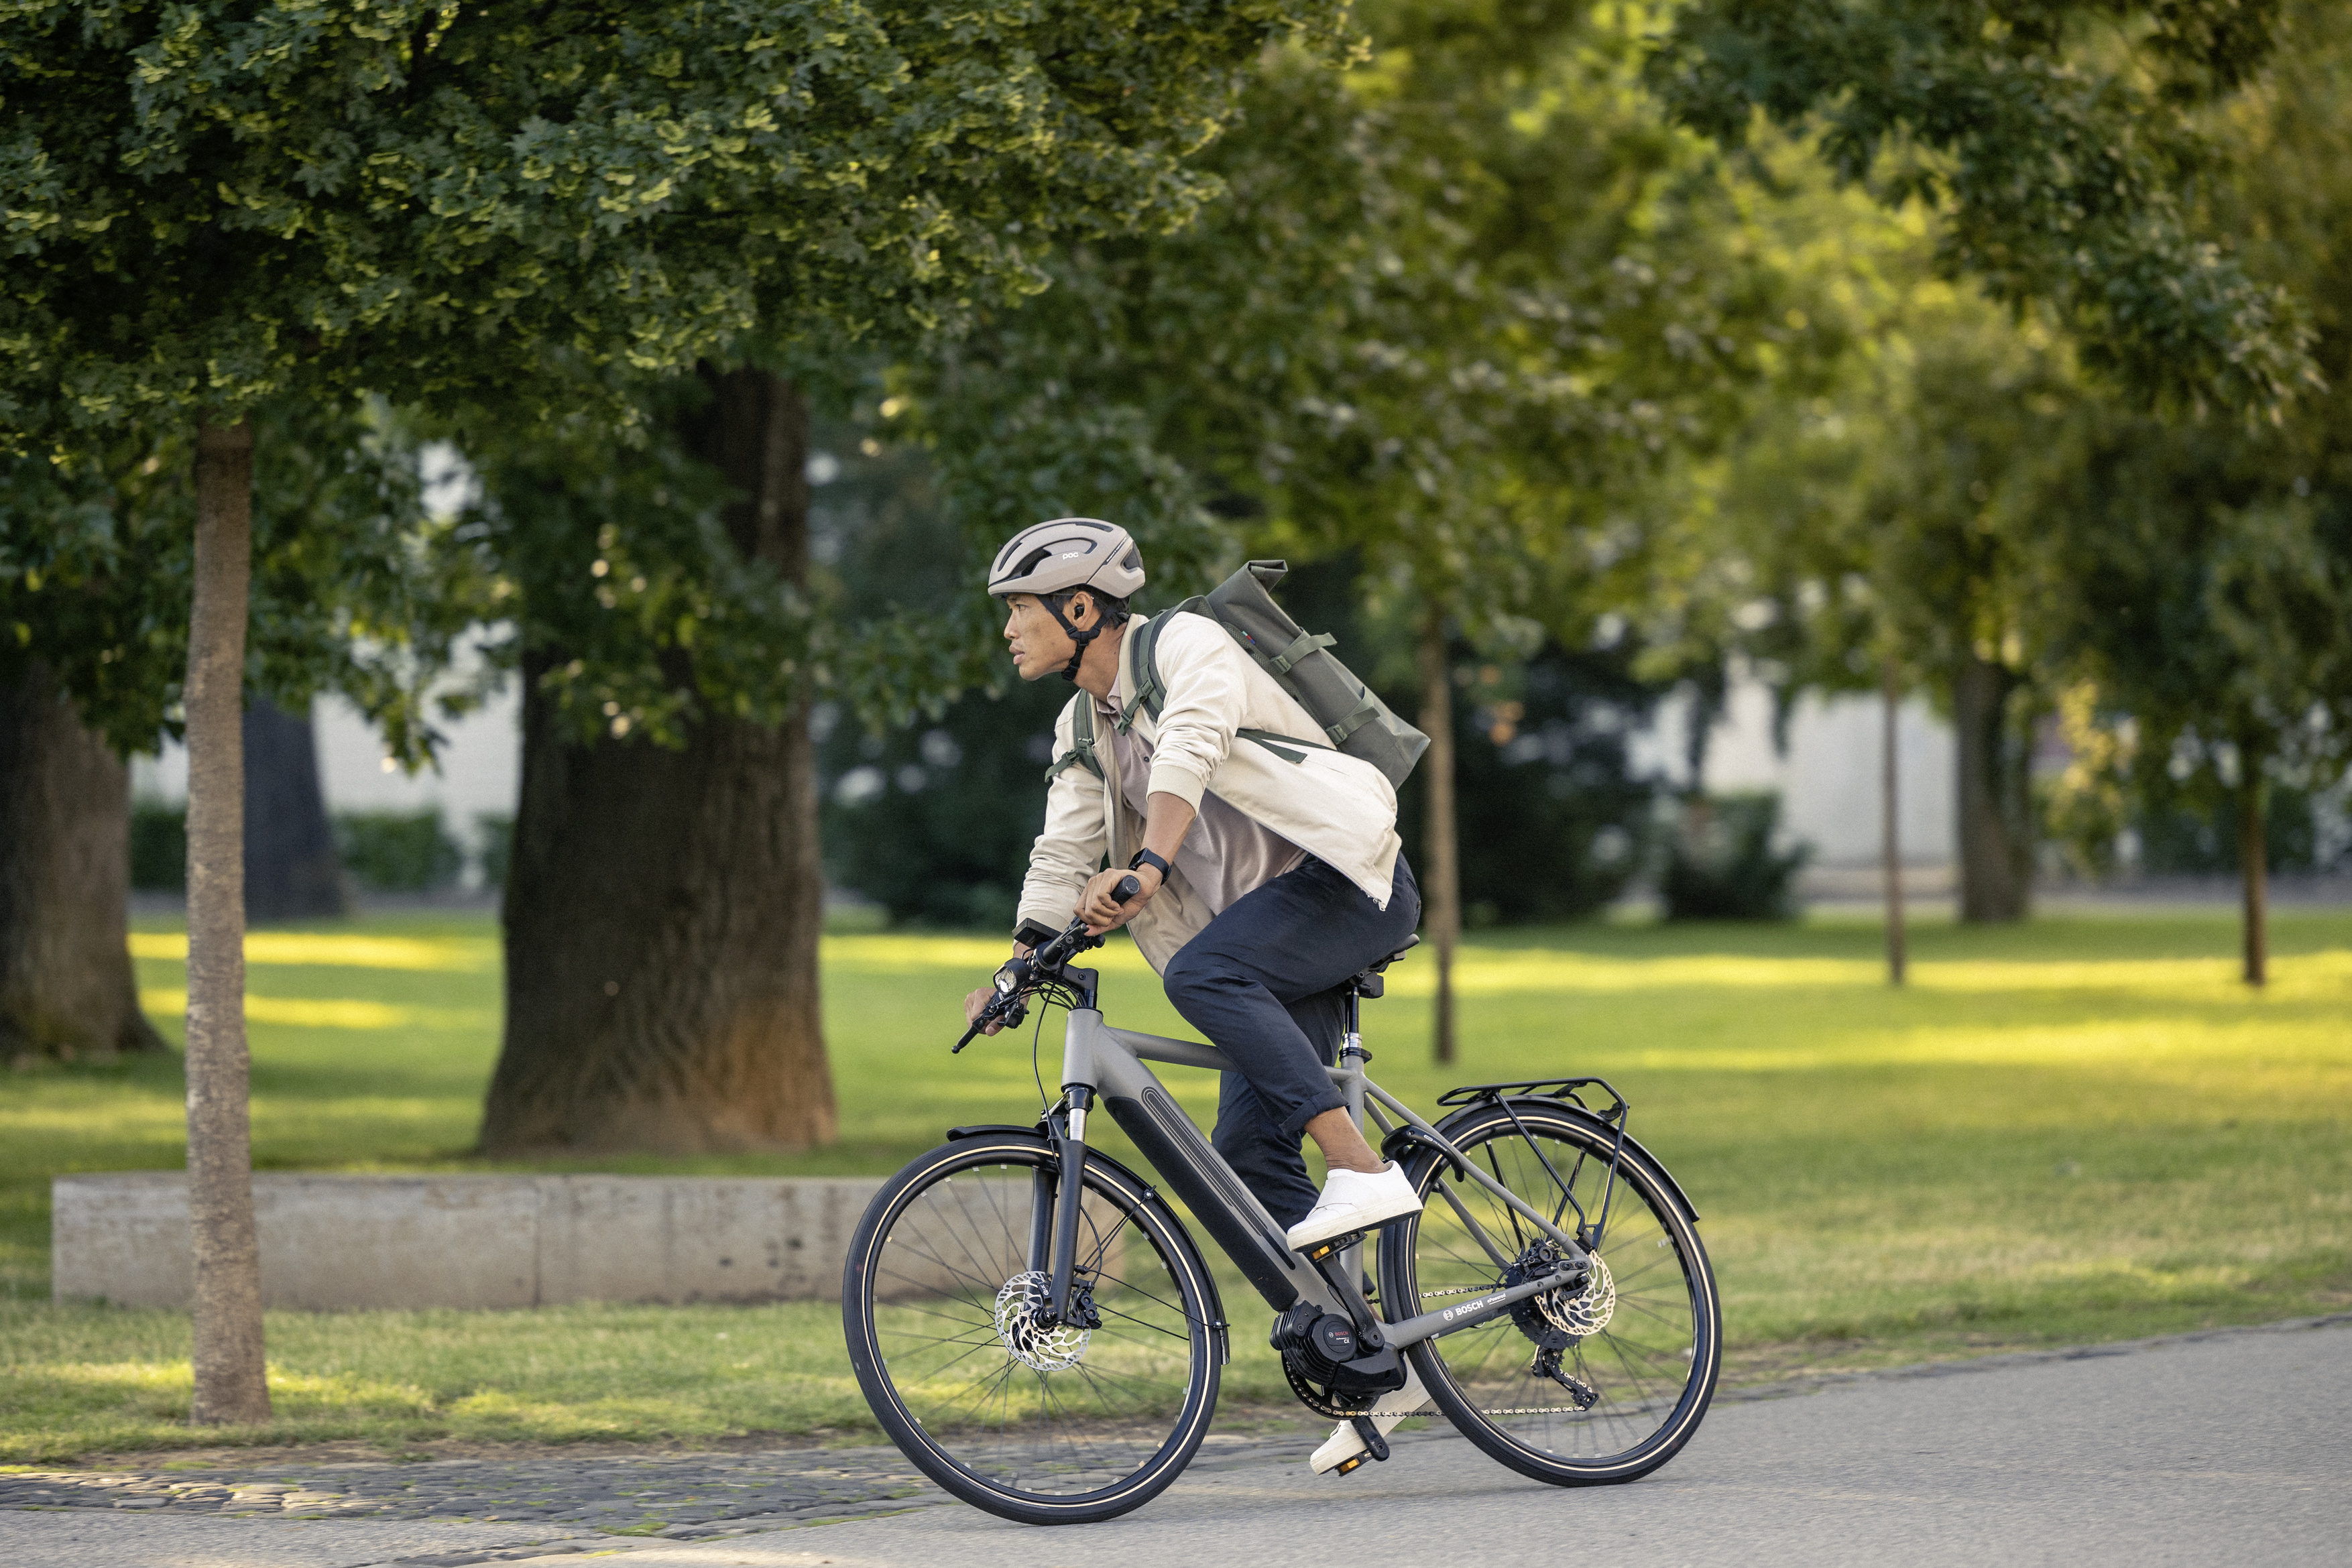 eBikes relieve traffic and reduce the burden on the environment.